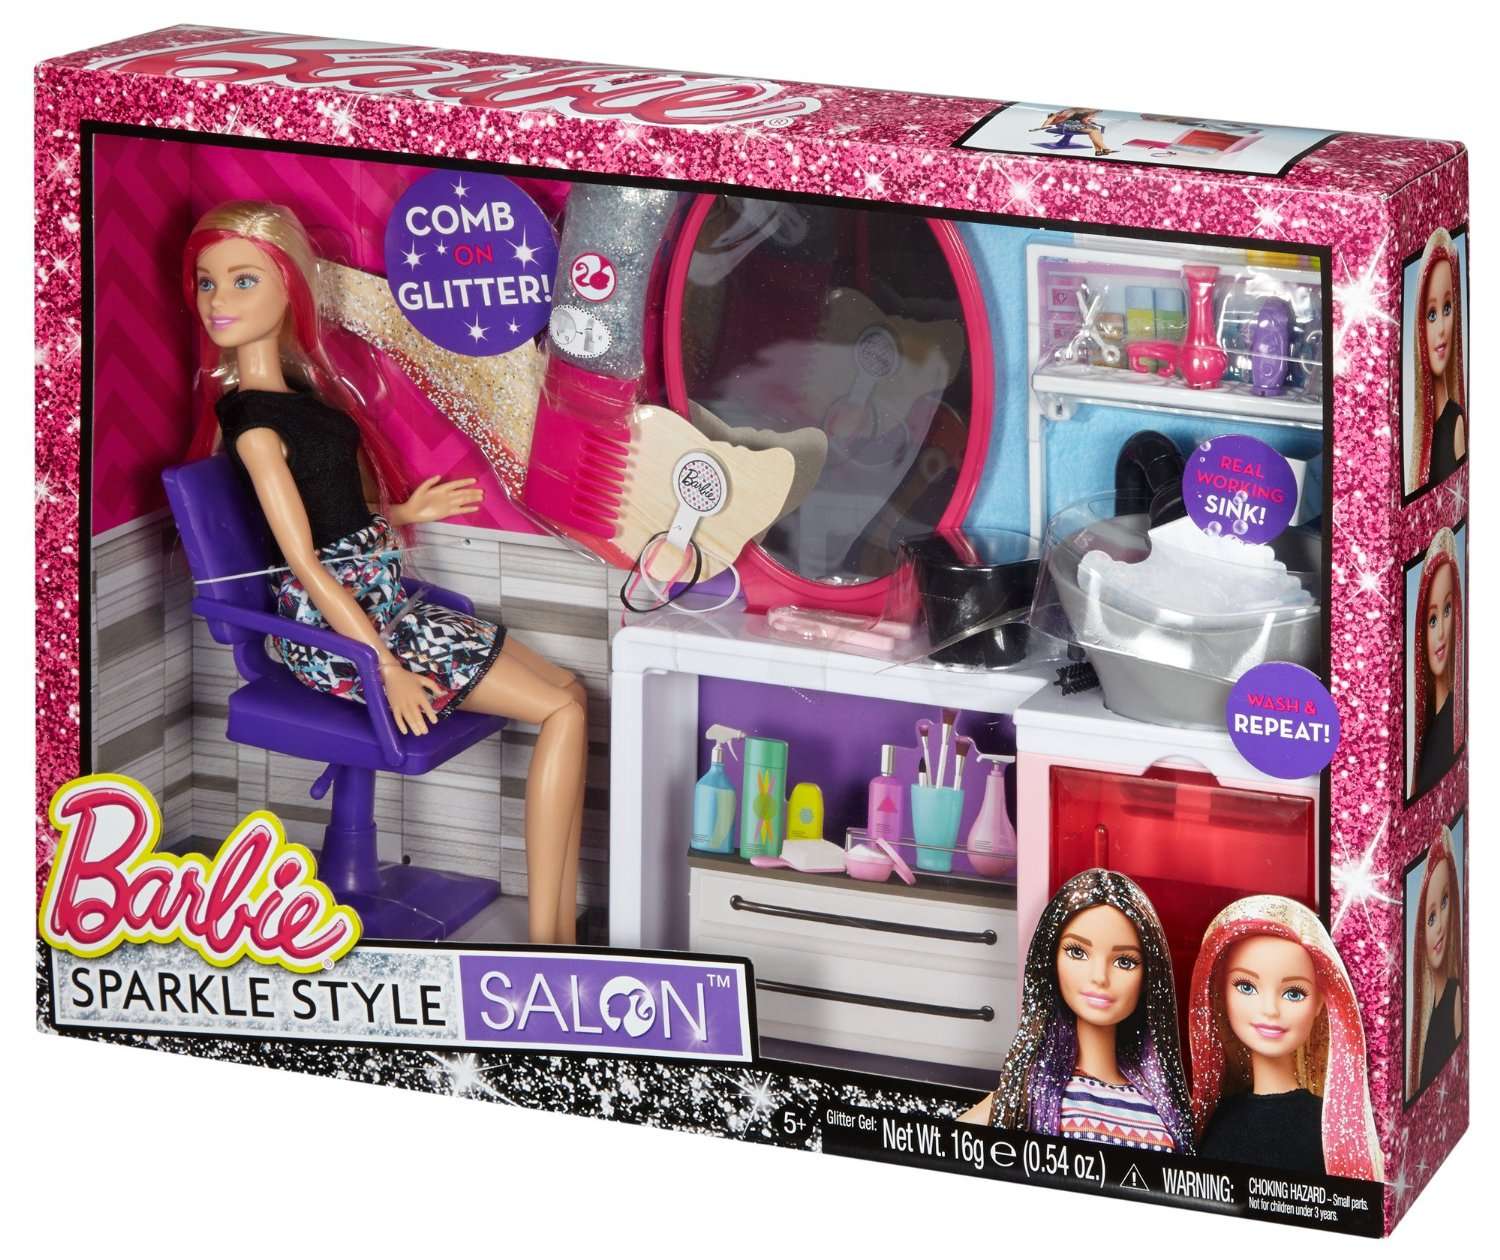 Toy Hair Salon : Barbie sparkle style salon blonde doll playset dtk